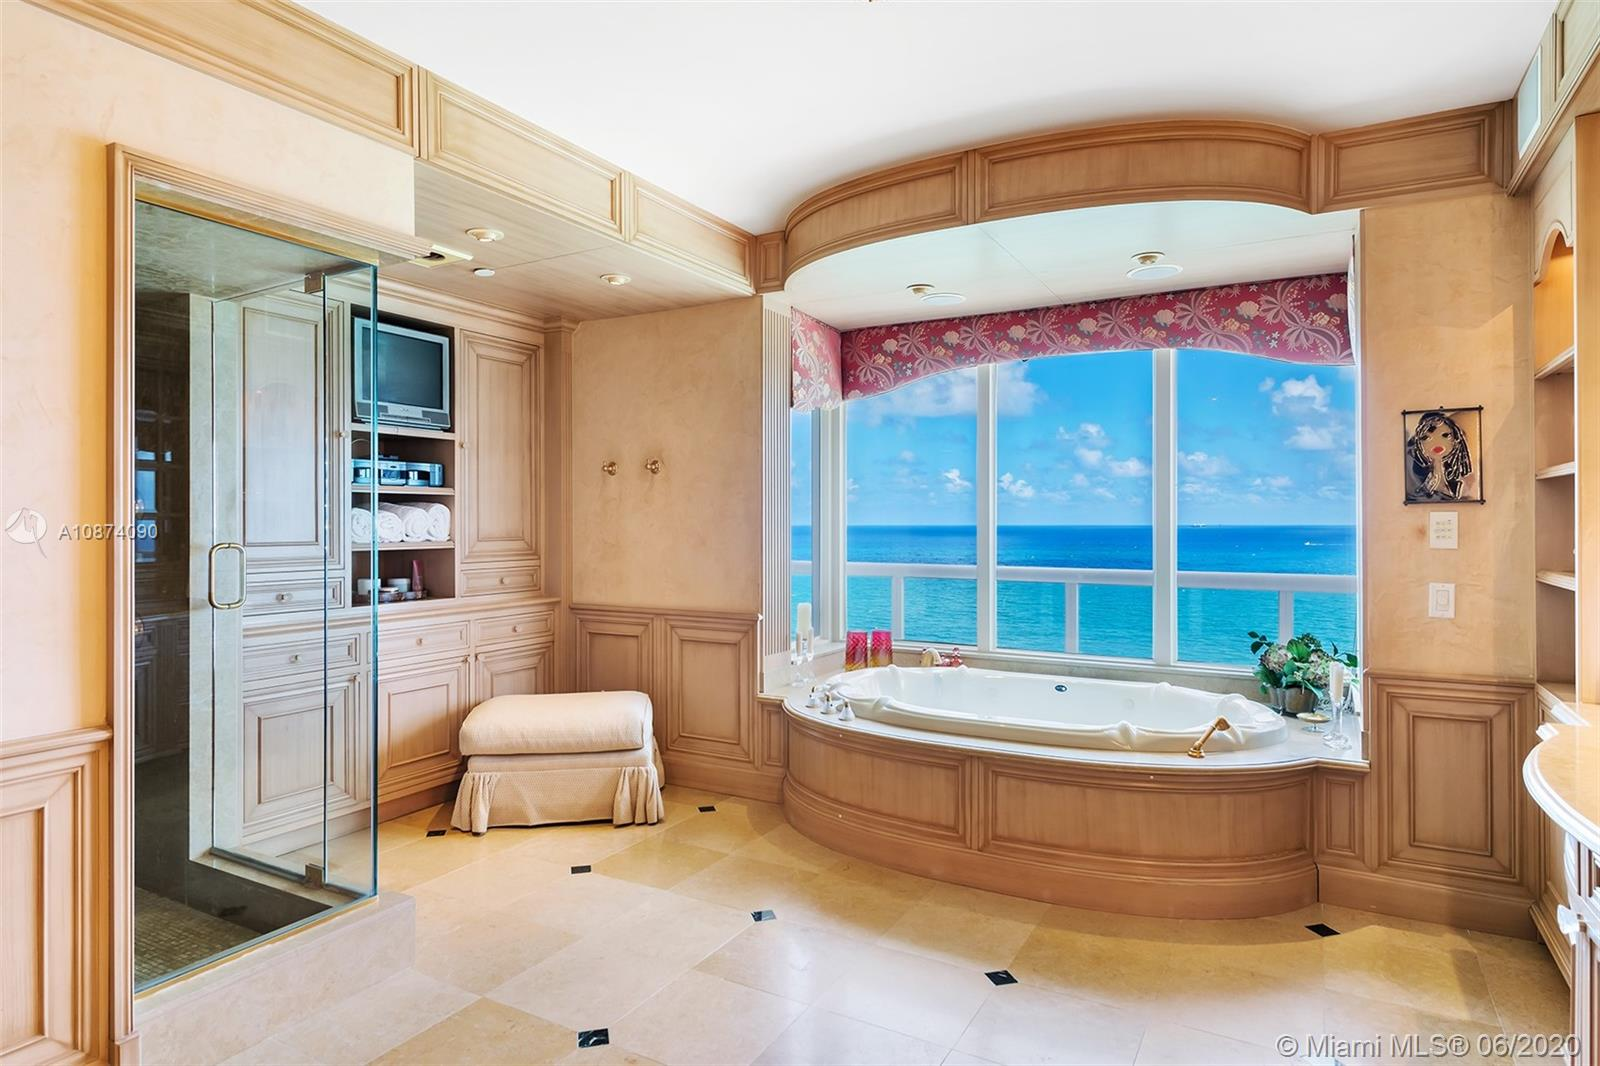 Photo of 6051 Ocean Dr #PH5, Hollywood, Florida, 33019 - Master bath features a whirlpool tub tucked in a bay window and separate shower